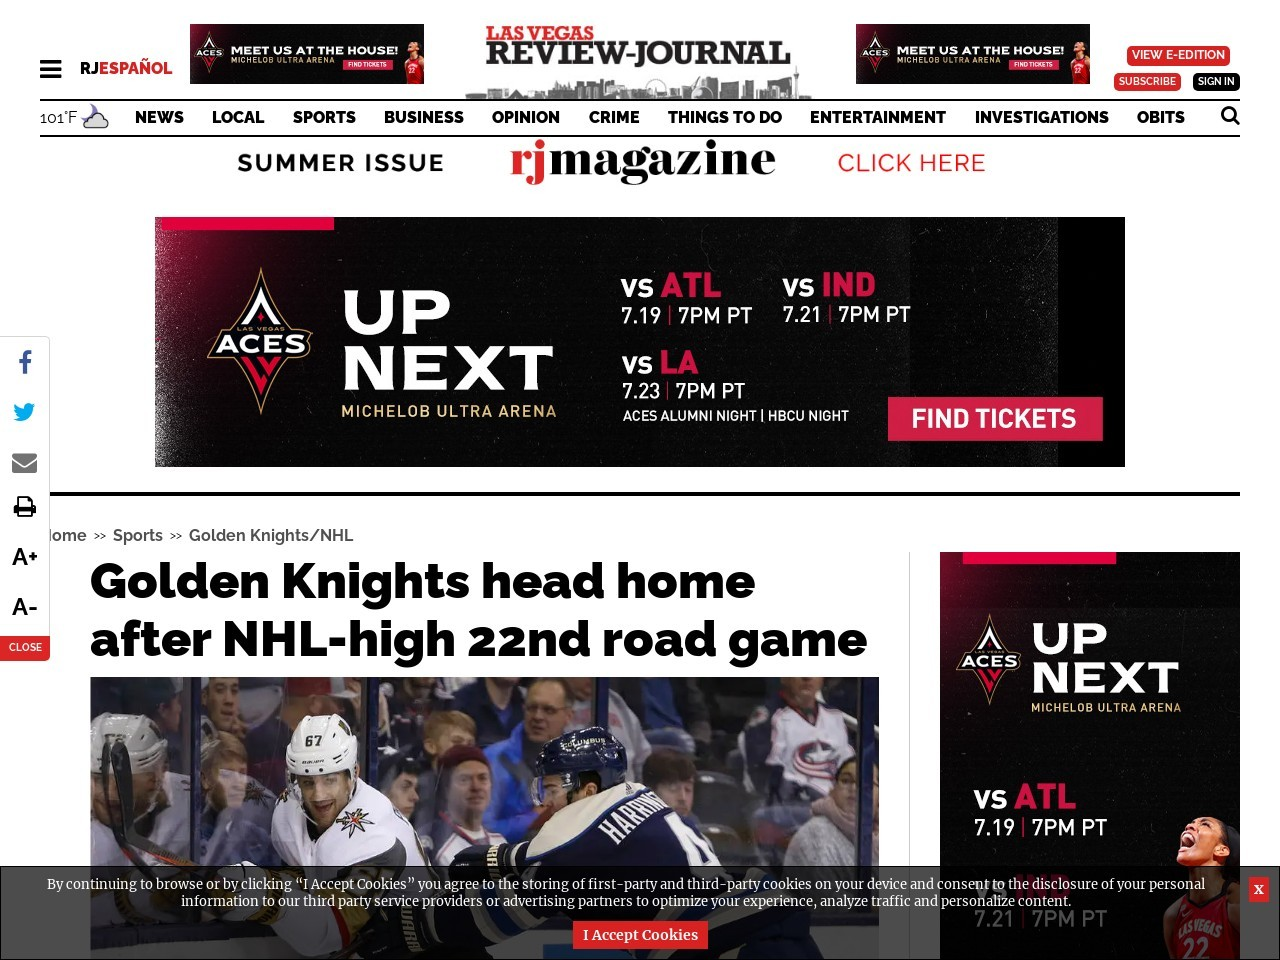 Golden Knights head home after NHL-high 22nd road game